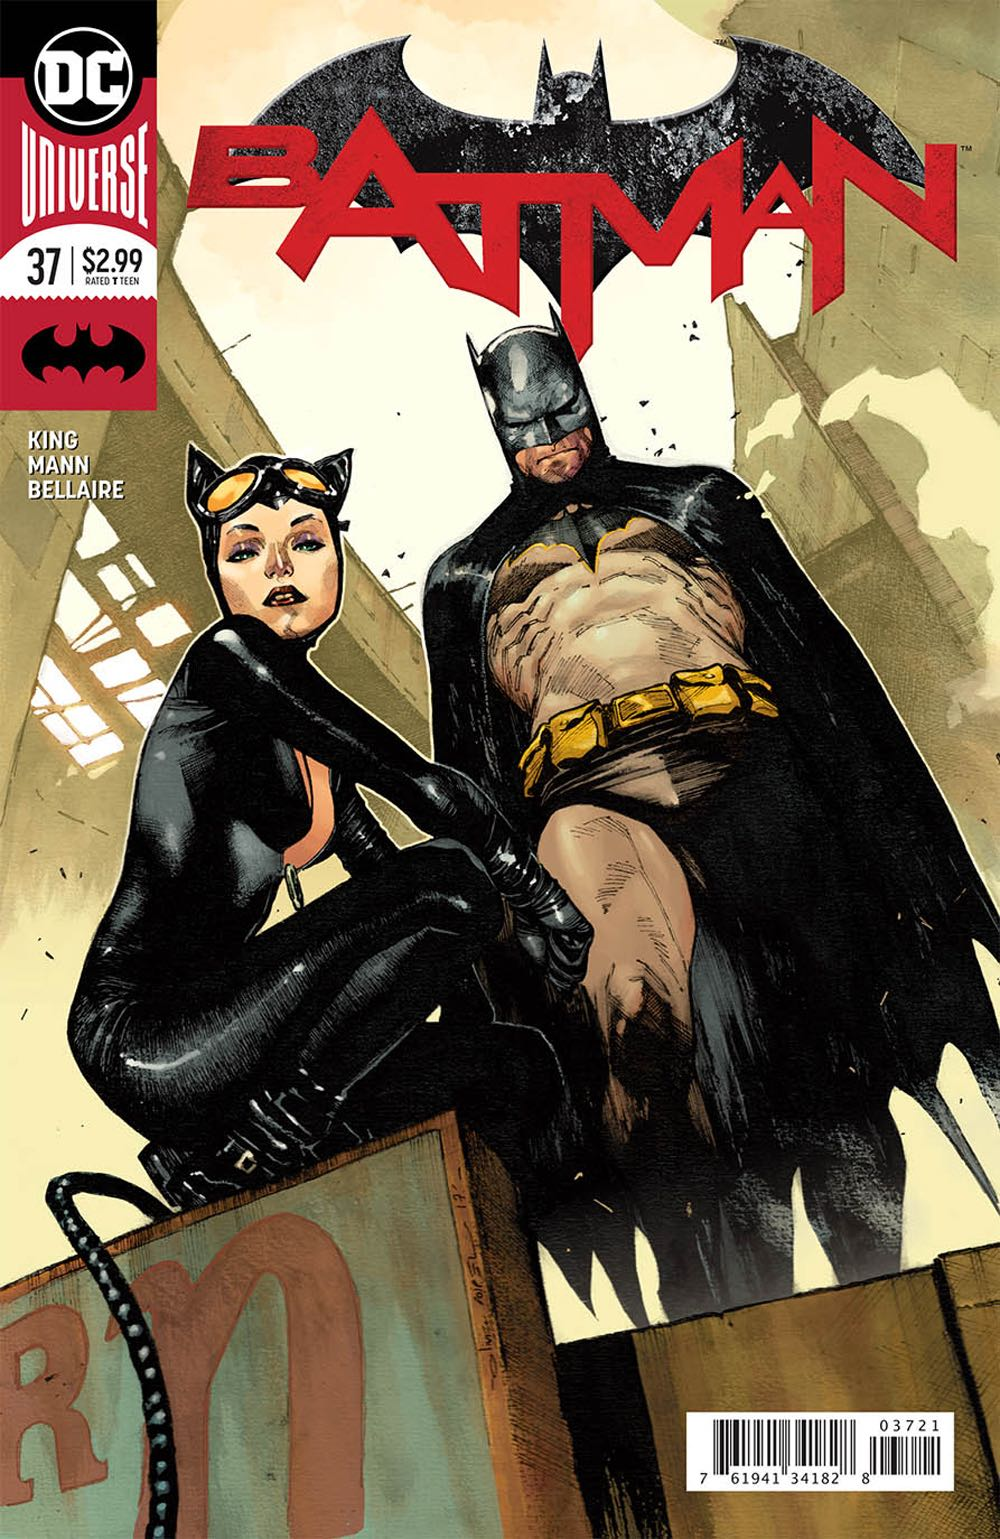 Episode 16 Variant of the Week - (DC) Batman #37 (Coipel Variant)Cover by Olivier CoipelWritten by Tom KingIllustrated by Clay MannDid the Content Match the Drapes? - UNR